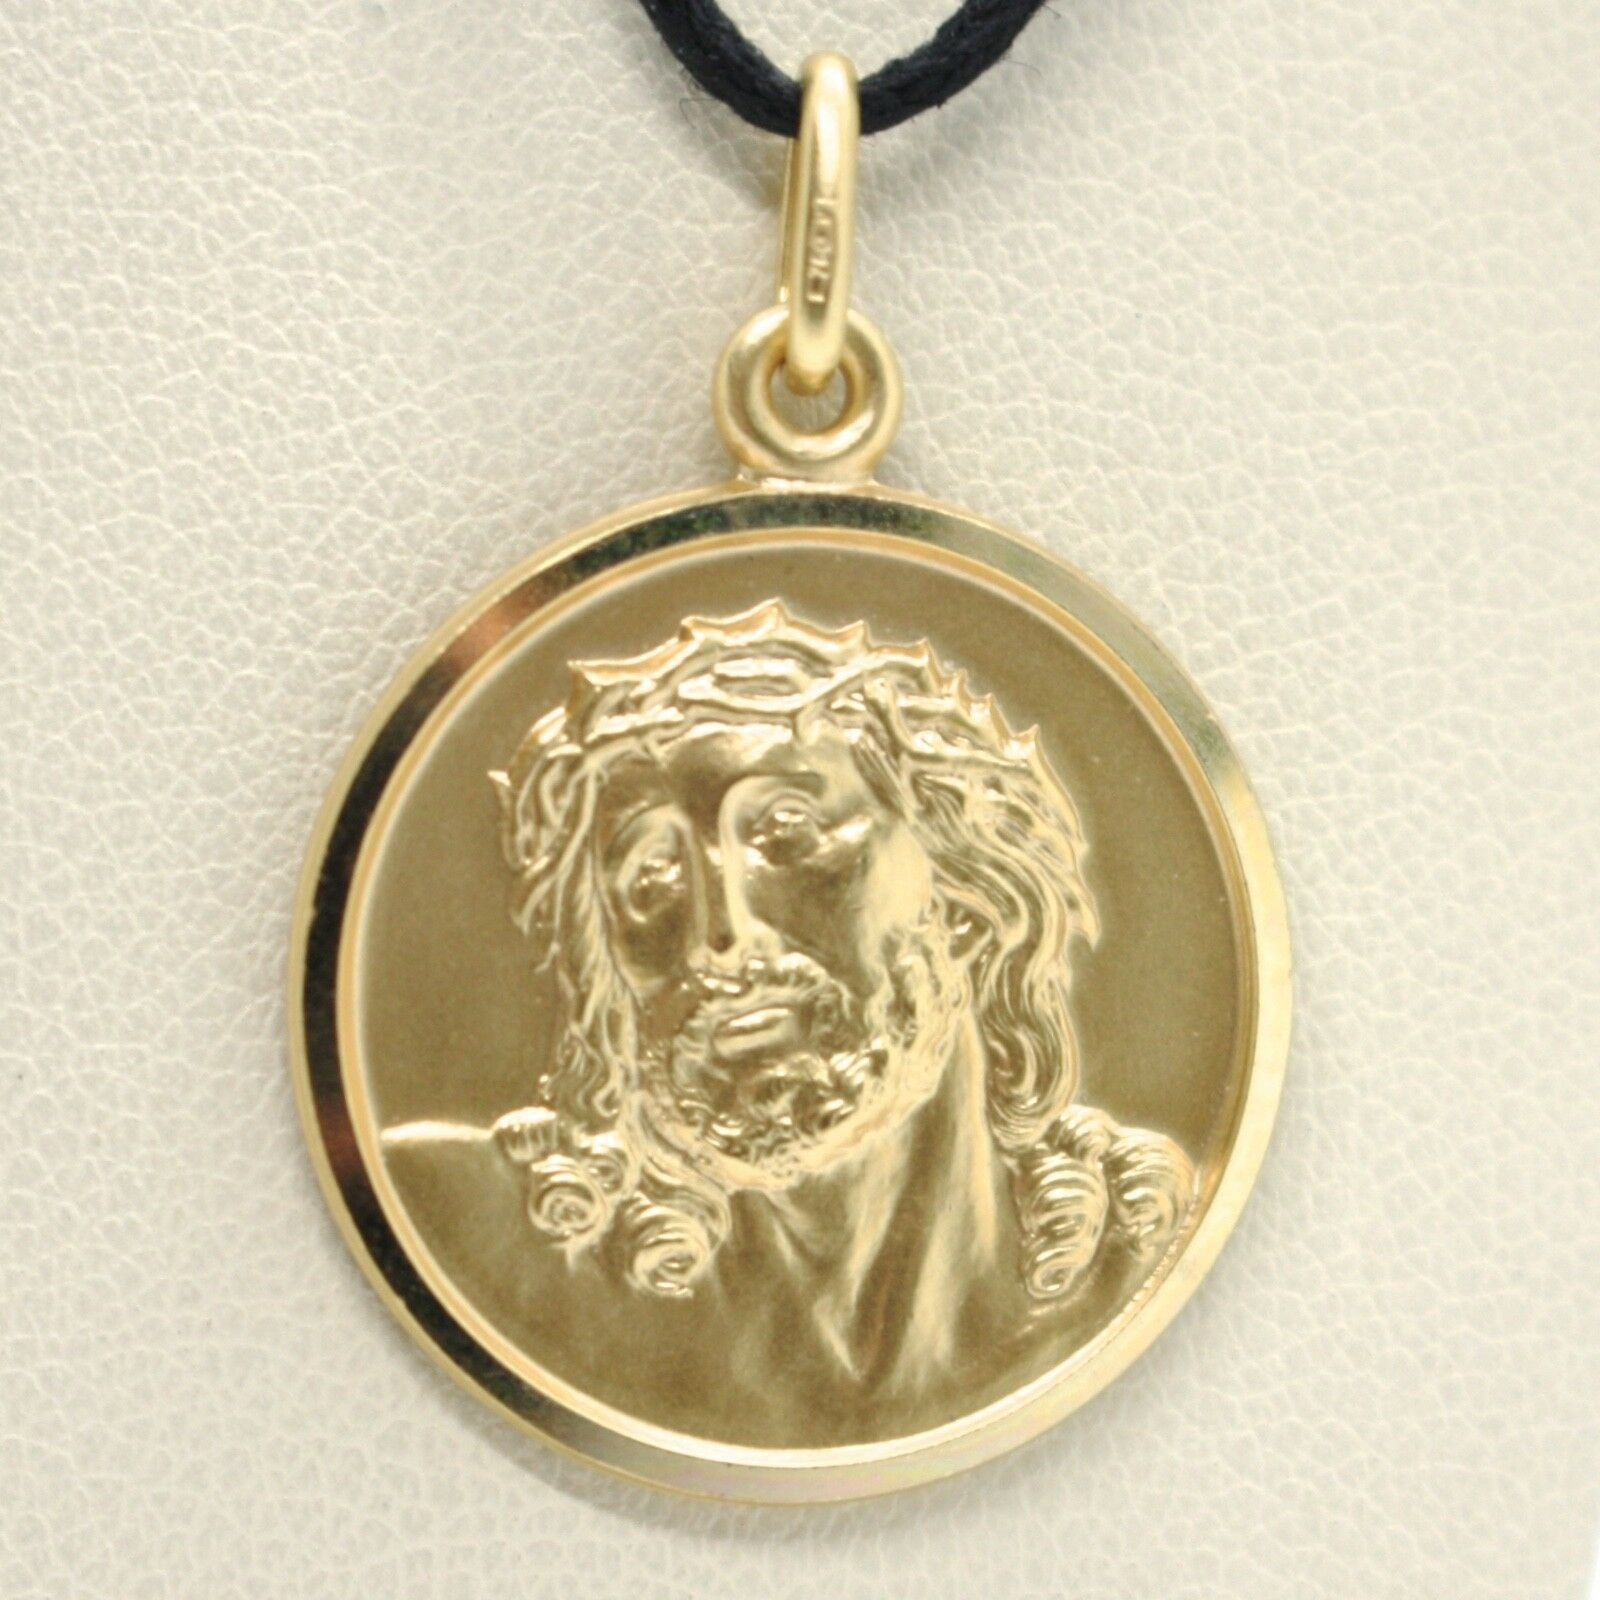 SOLID 18K YELLOW GOLD ECCE HOMO, JESUS CHRIST FACE MEDAL, DETAILED MADE IN ITALY